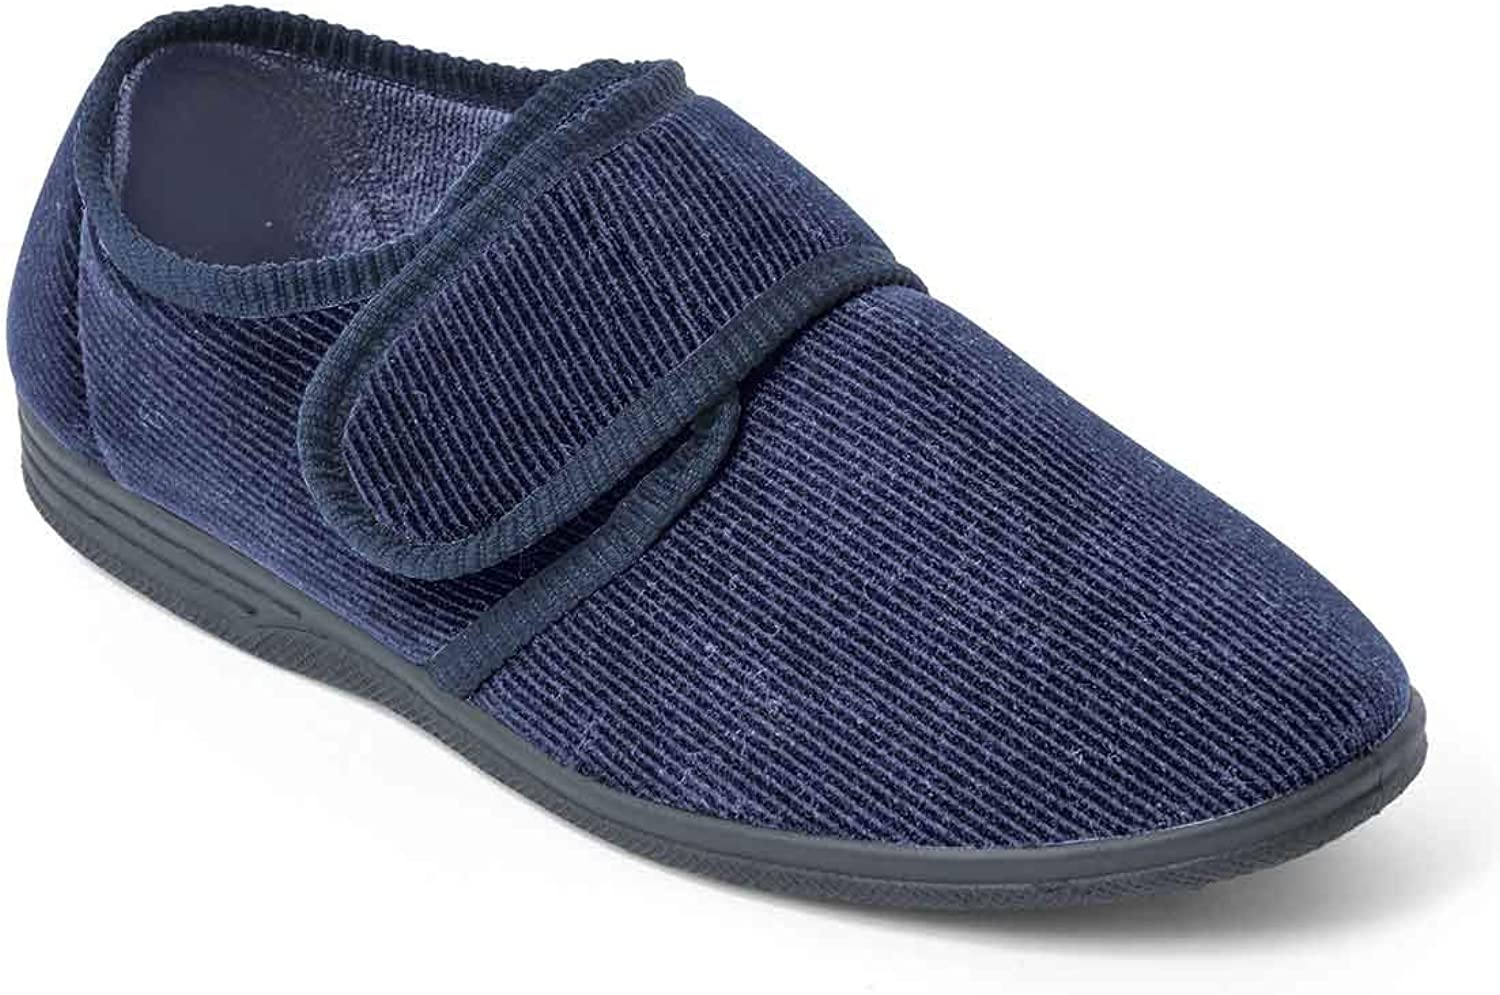 Chums Mens Wide Fit Slipper Touch Fasten : Amazon.co.uk